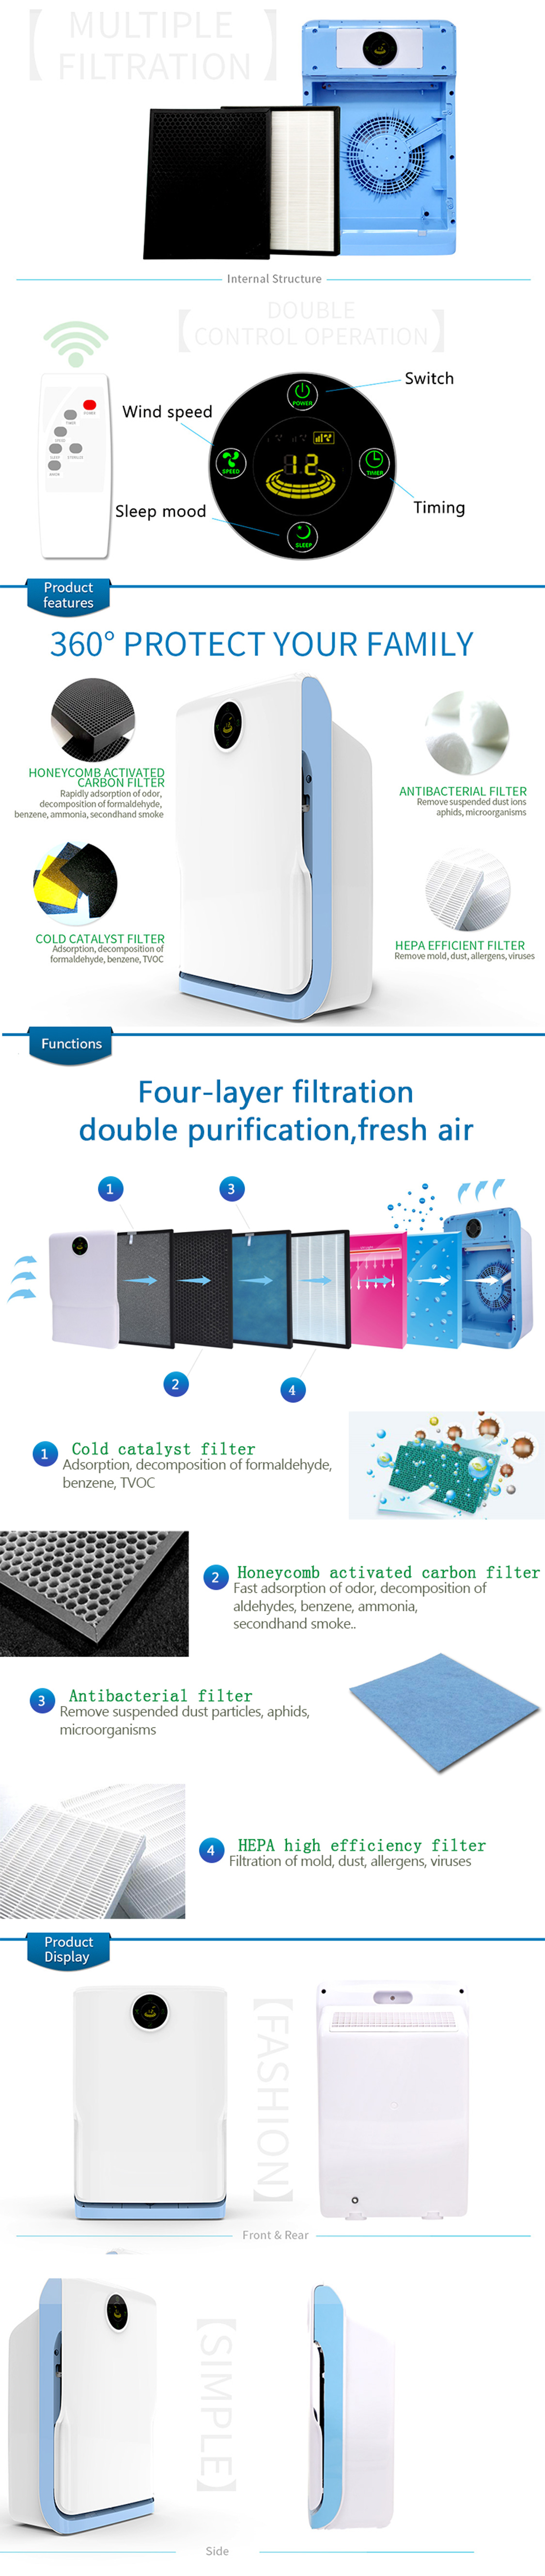 Olansi 2019 OEM ODM small size 7 filtrations office air purifier room air filter HEPA air cleaner for bedroom babyroom